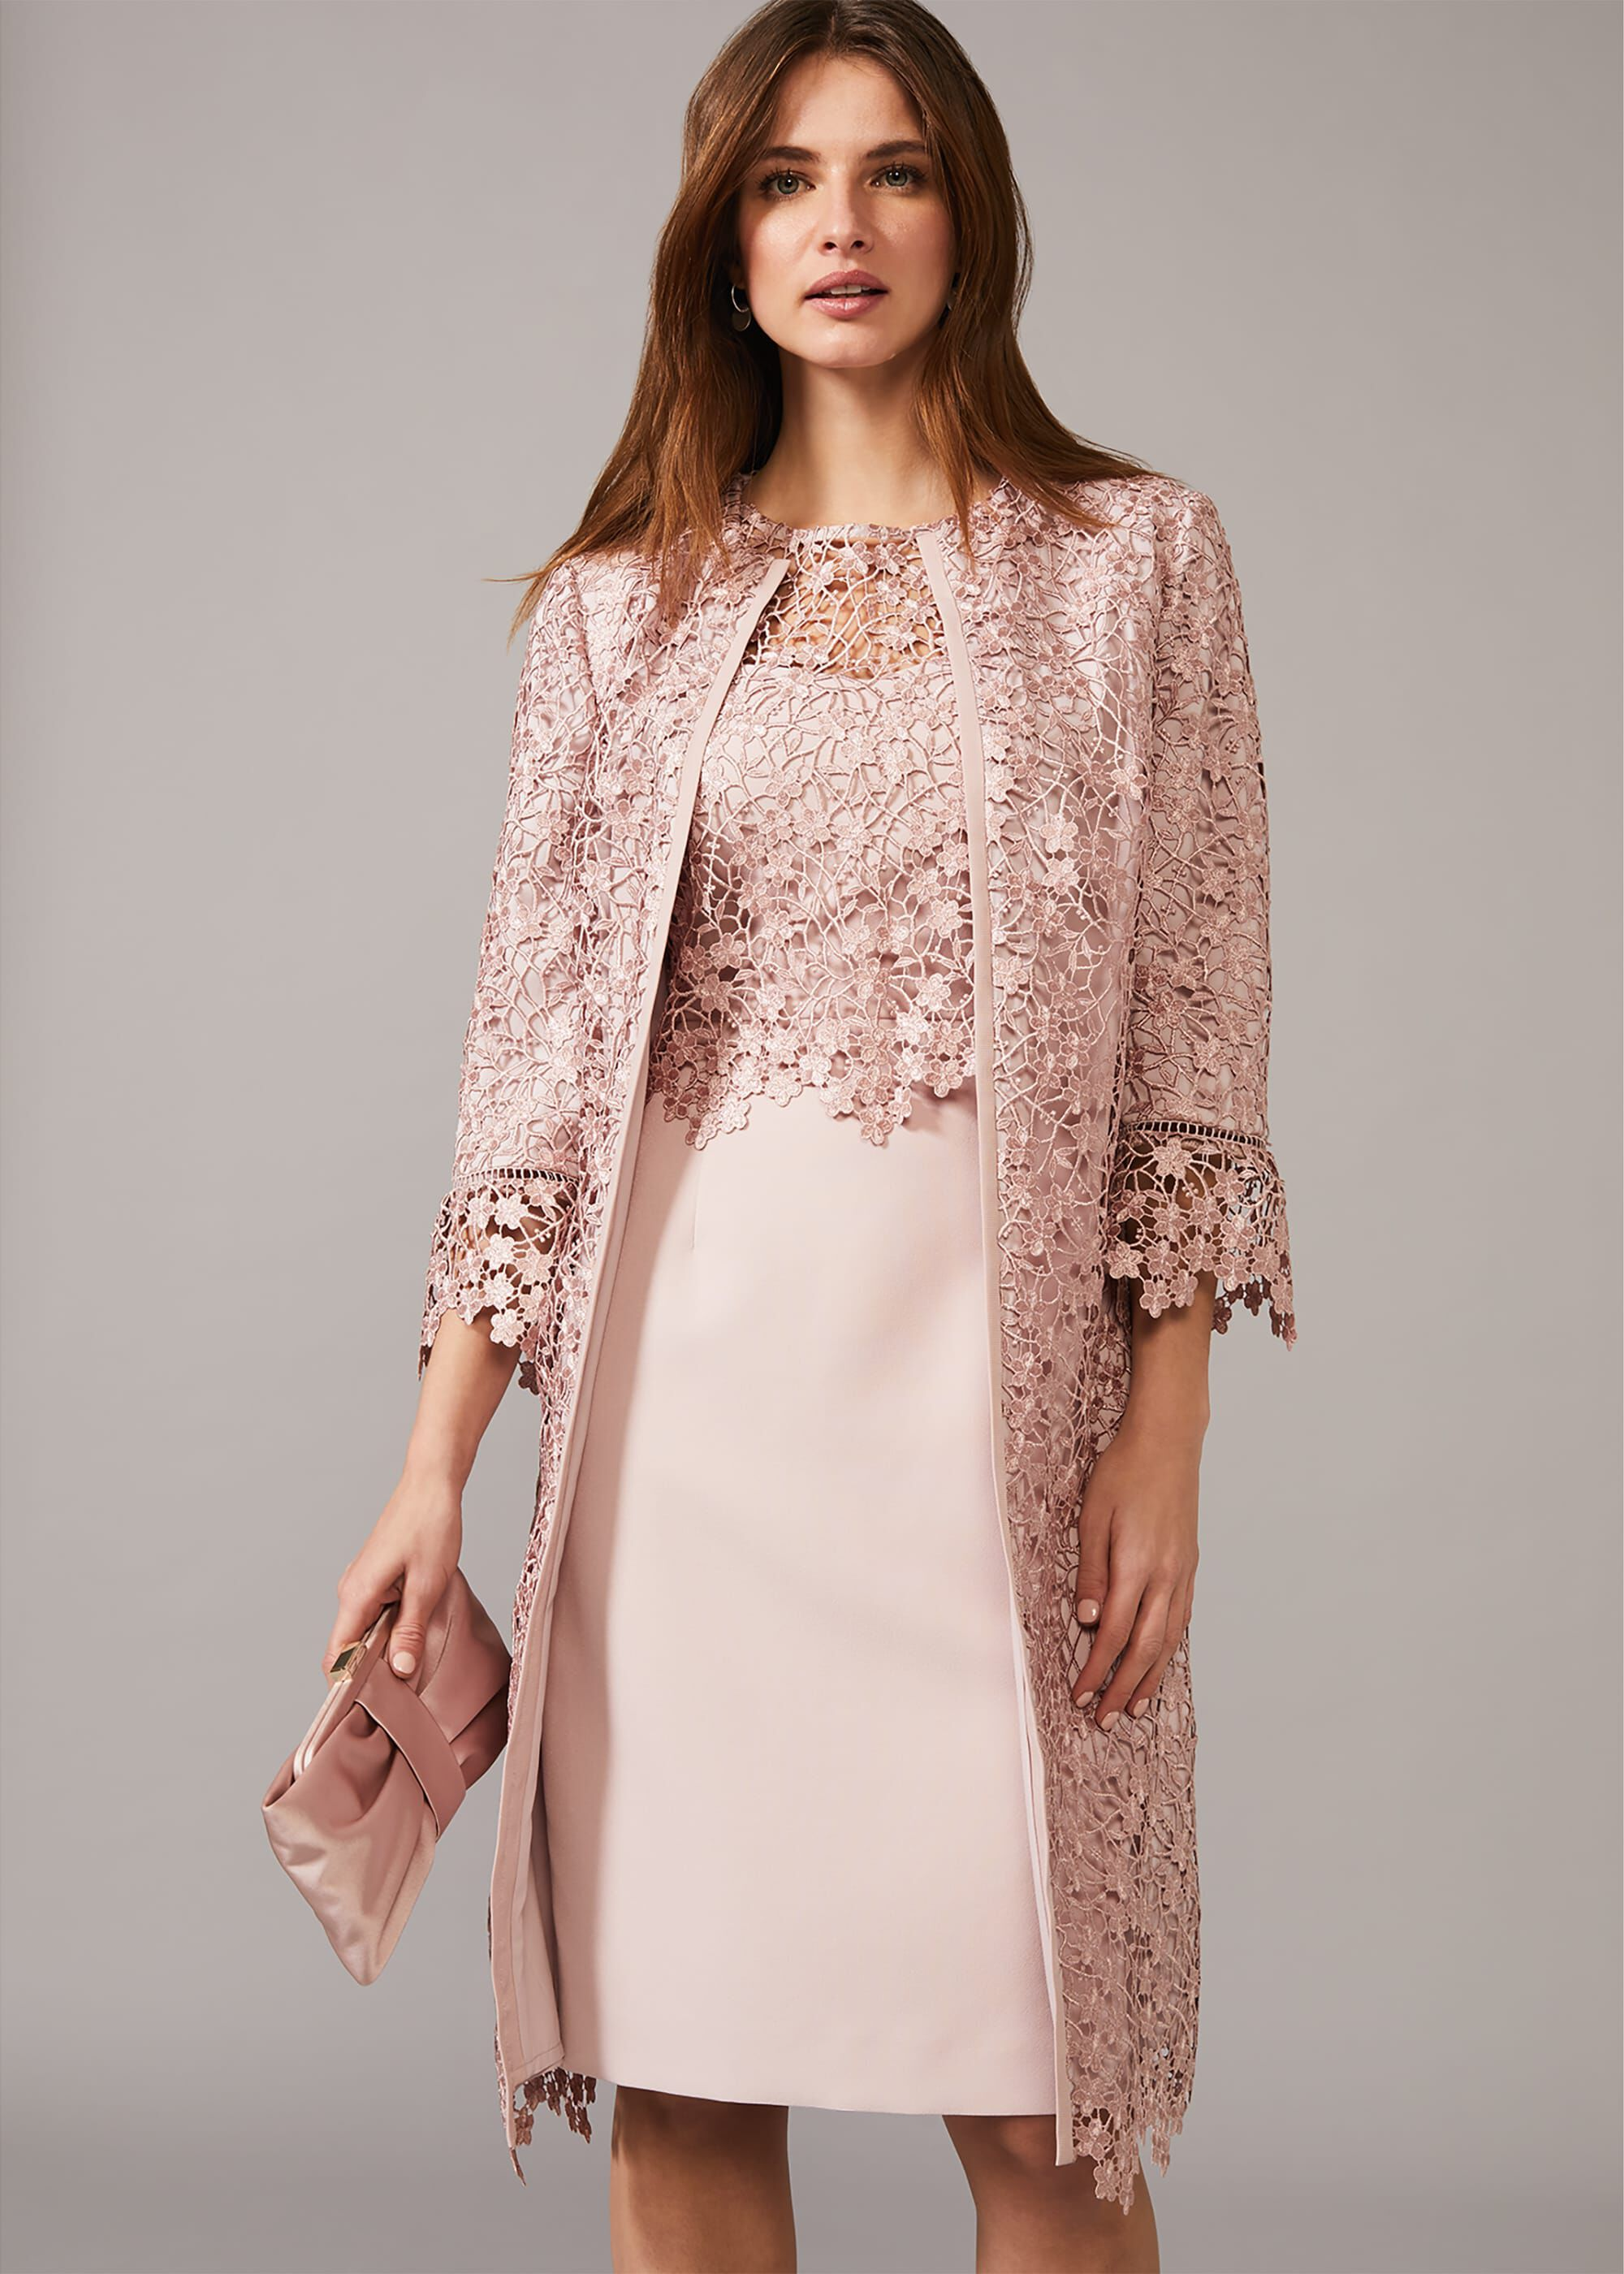 Phase Eight Mariposa Lace Occasion Coat, Pink